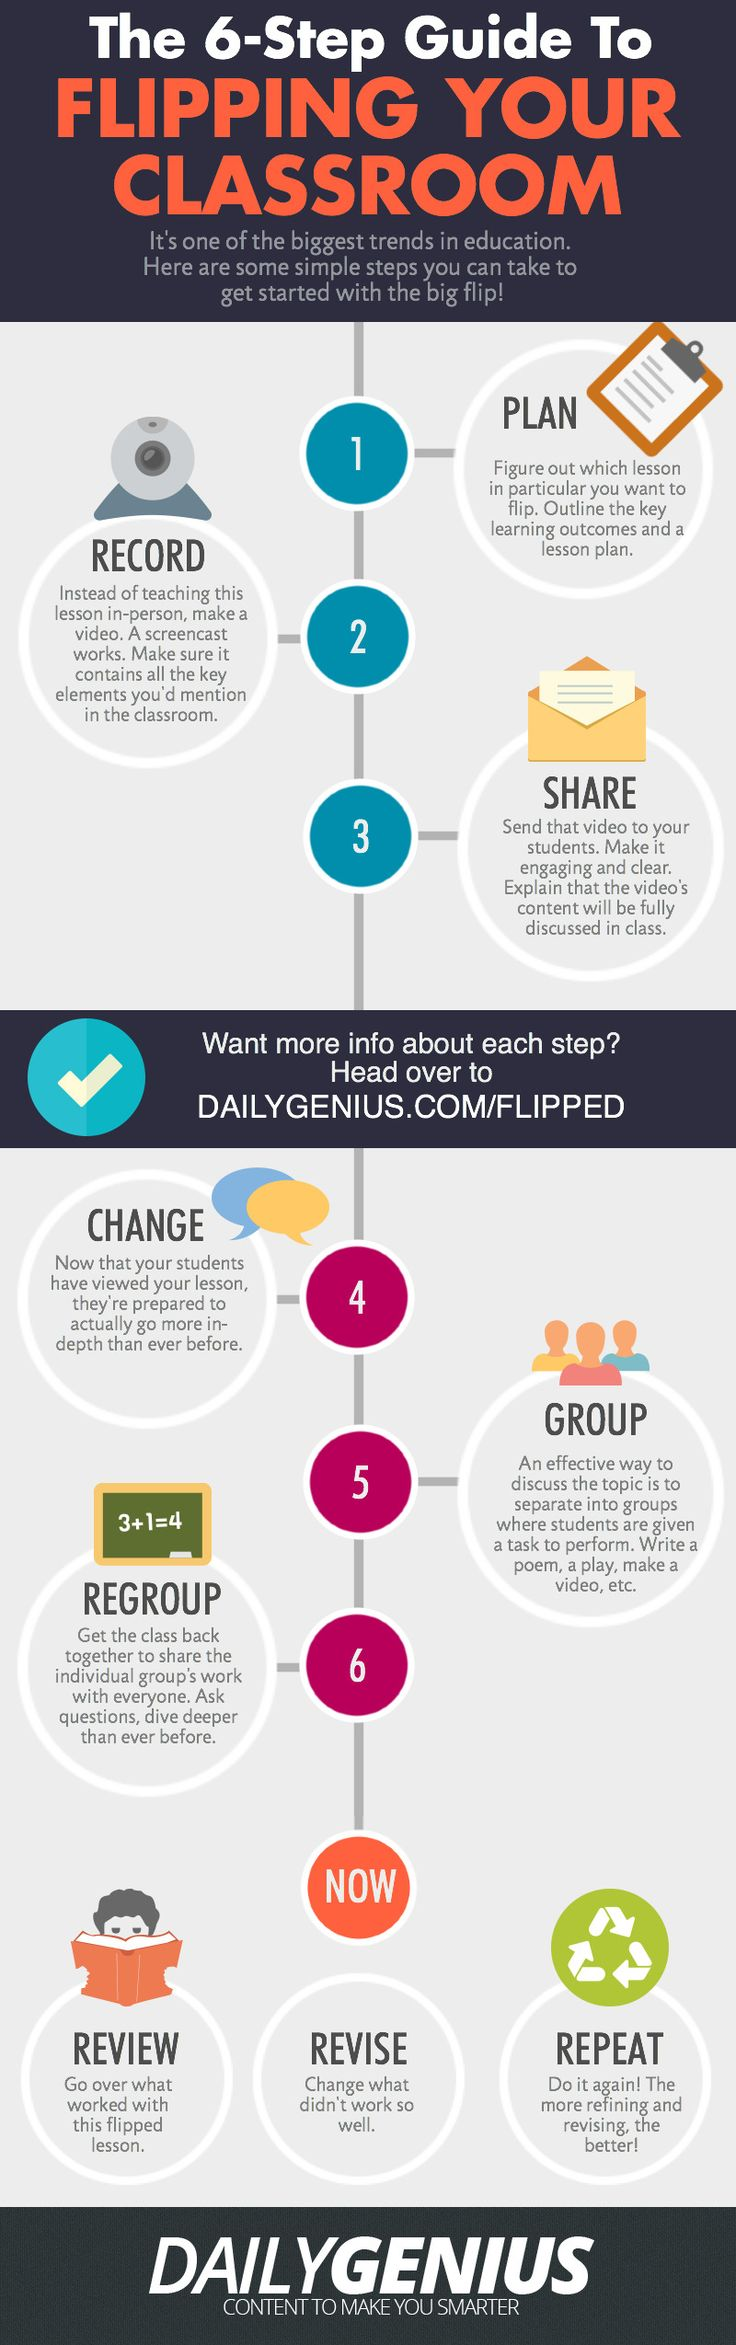 6 Steps to Flipping A Classroom Infographic - http://elearninginfographics.com/6-steps-flipping-classroom-infographic/